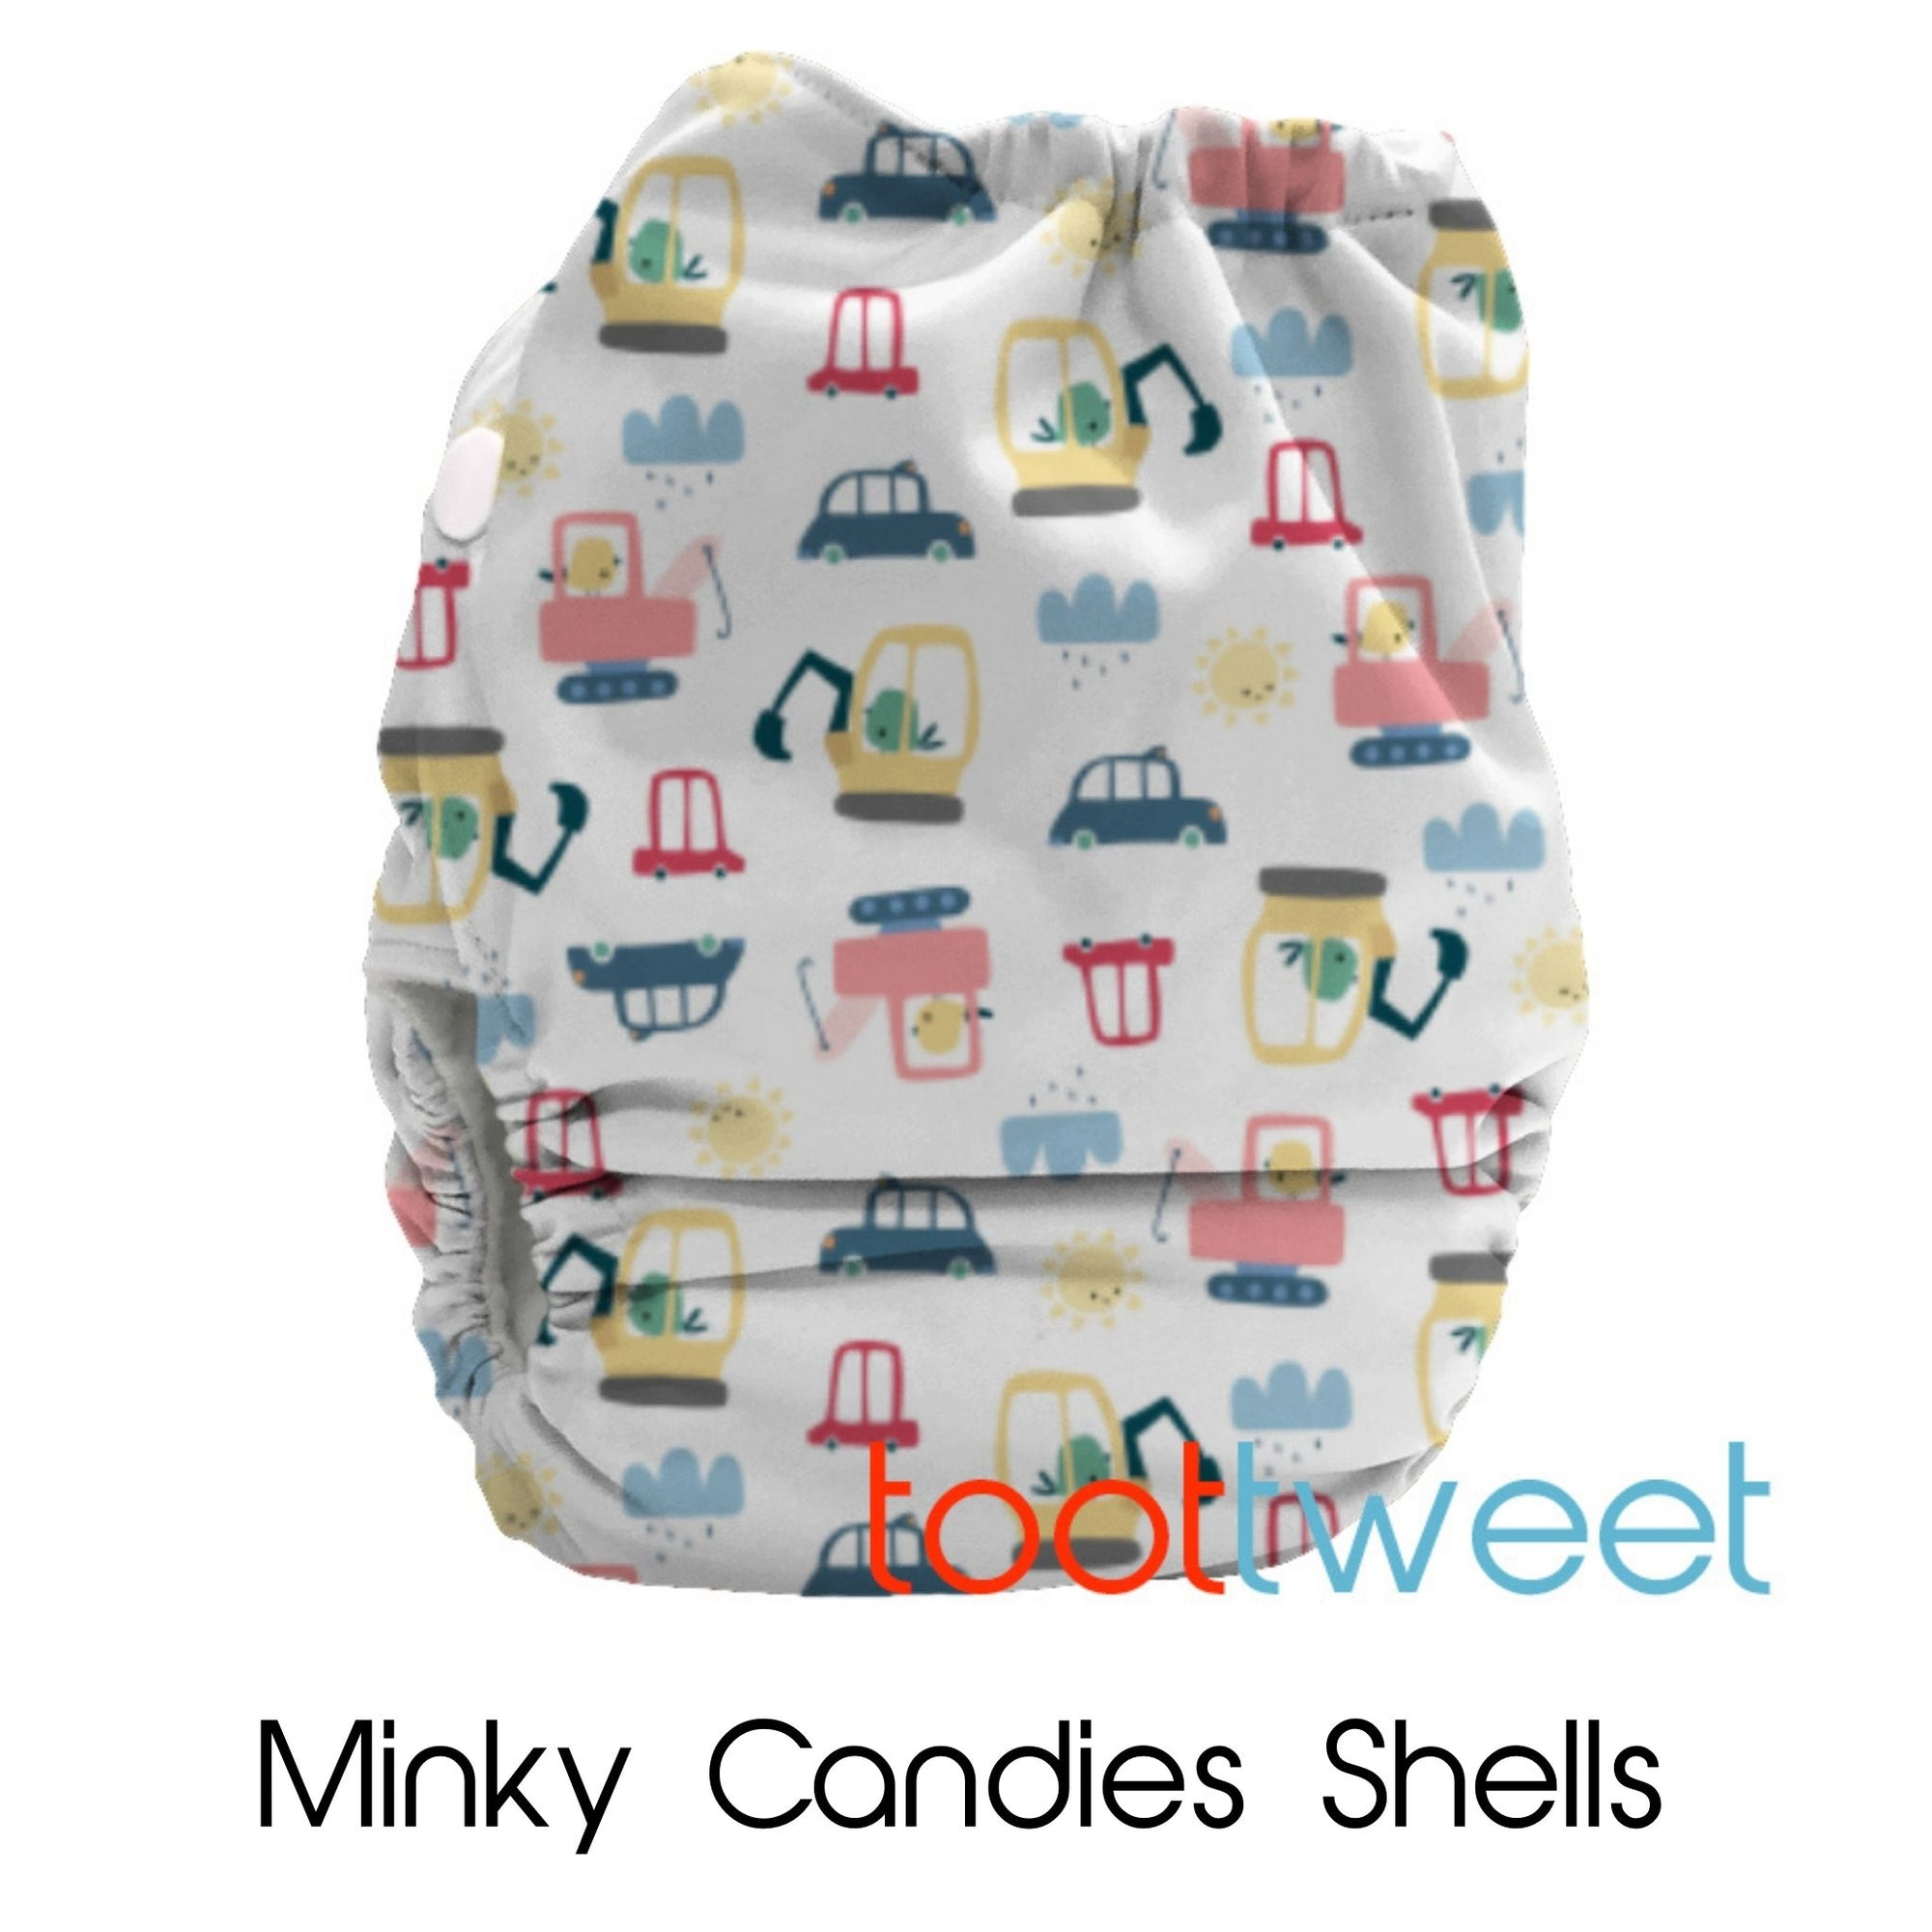 PREORDER (due approx 9 Nov) - Limited Edition Minky Candies Shell Only